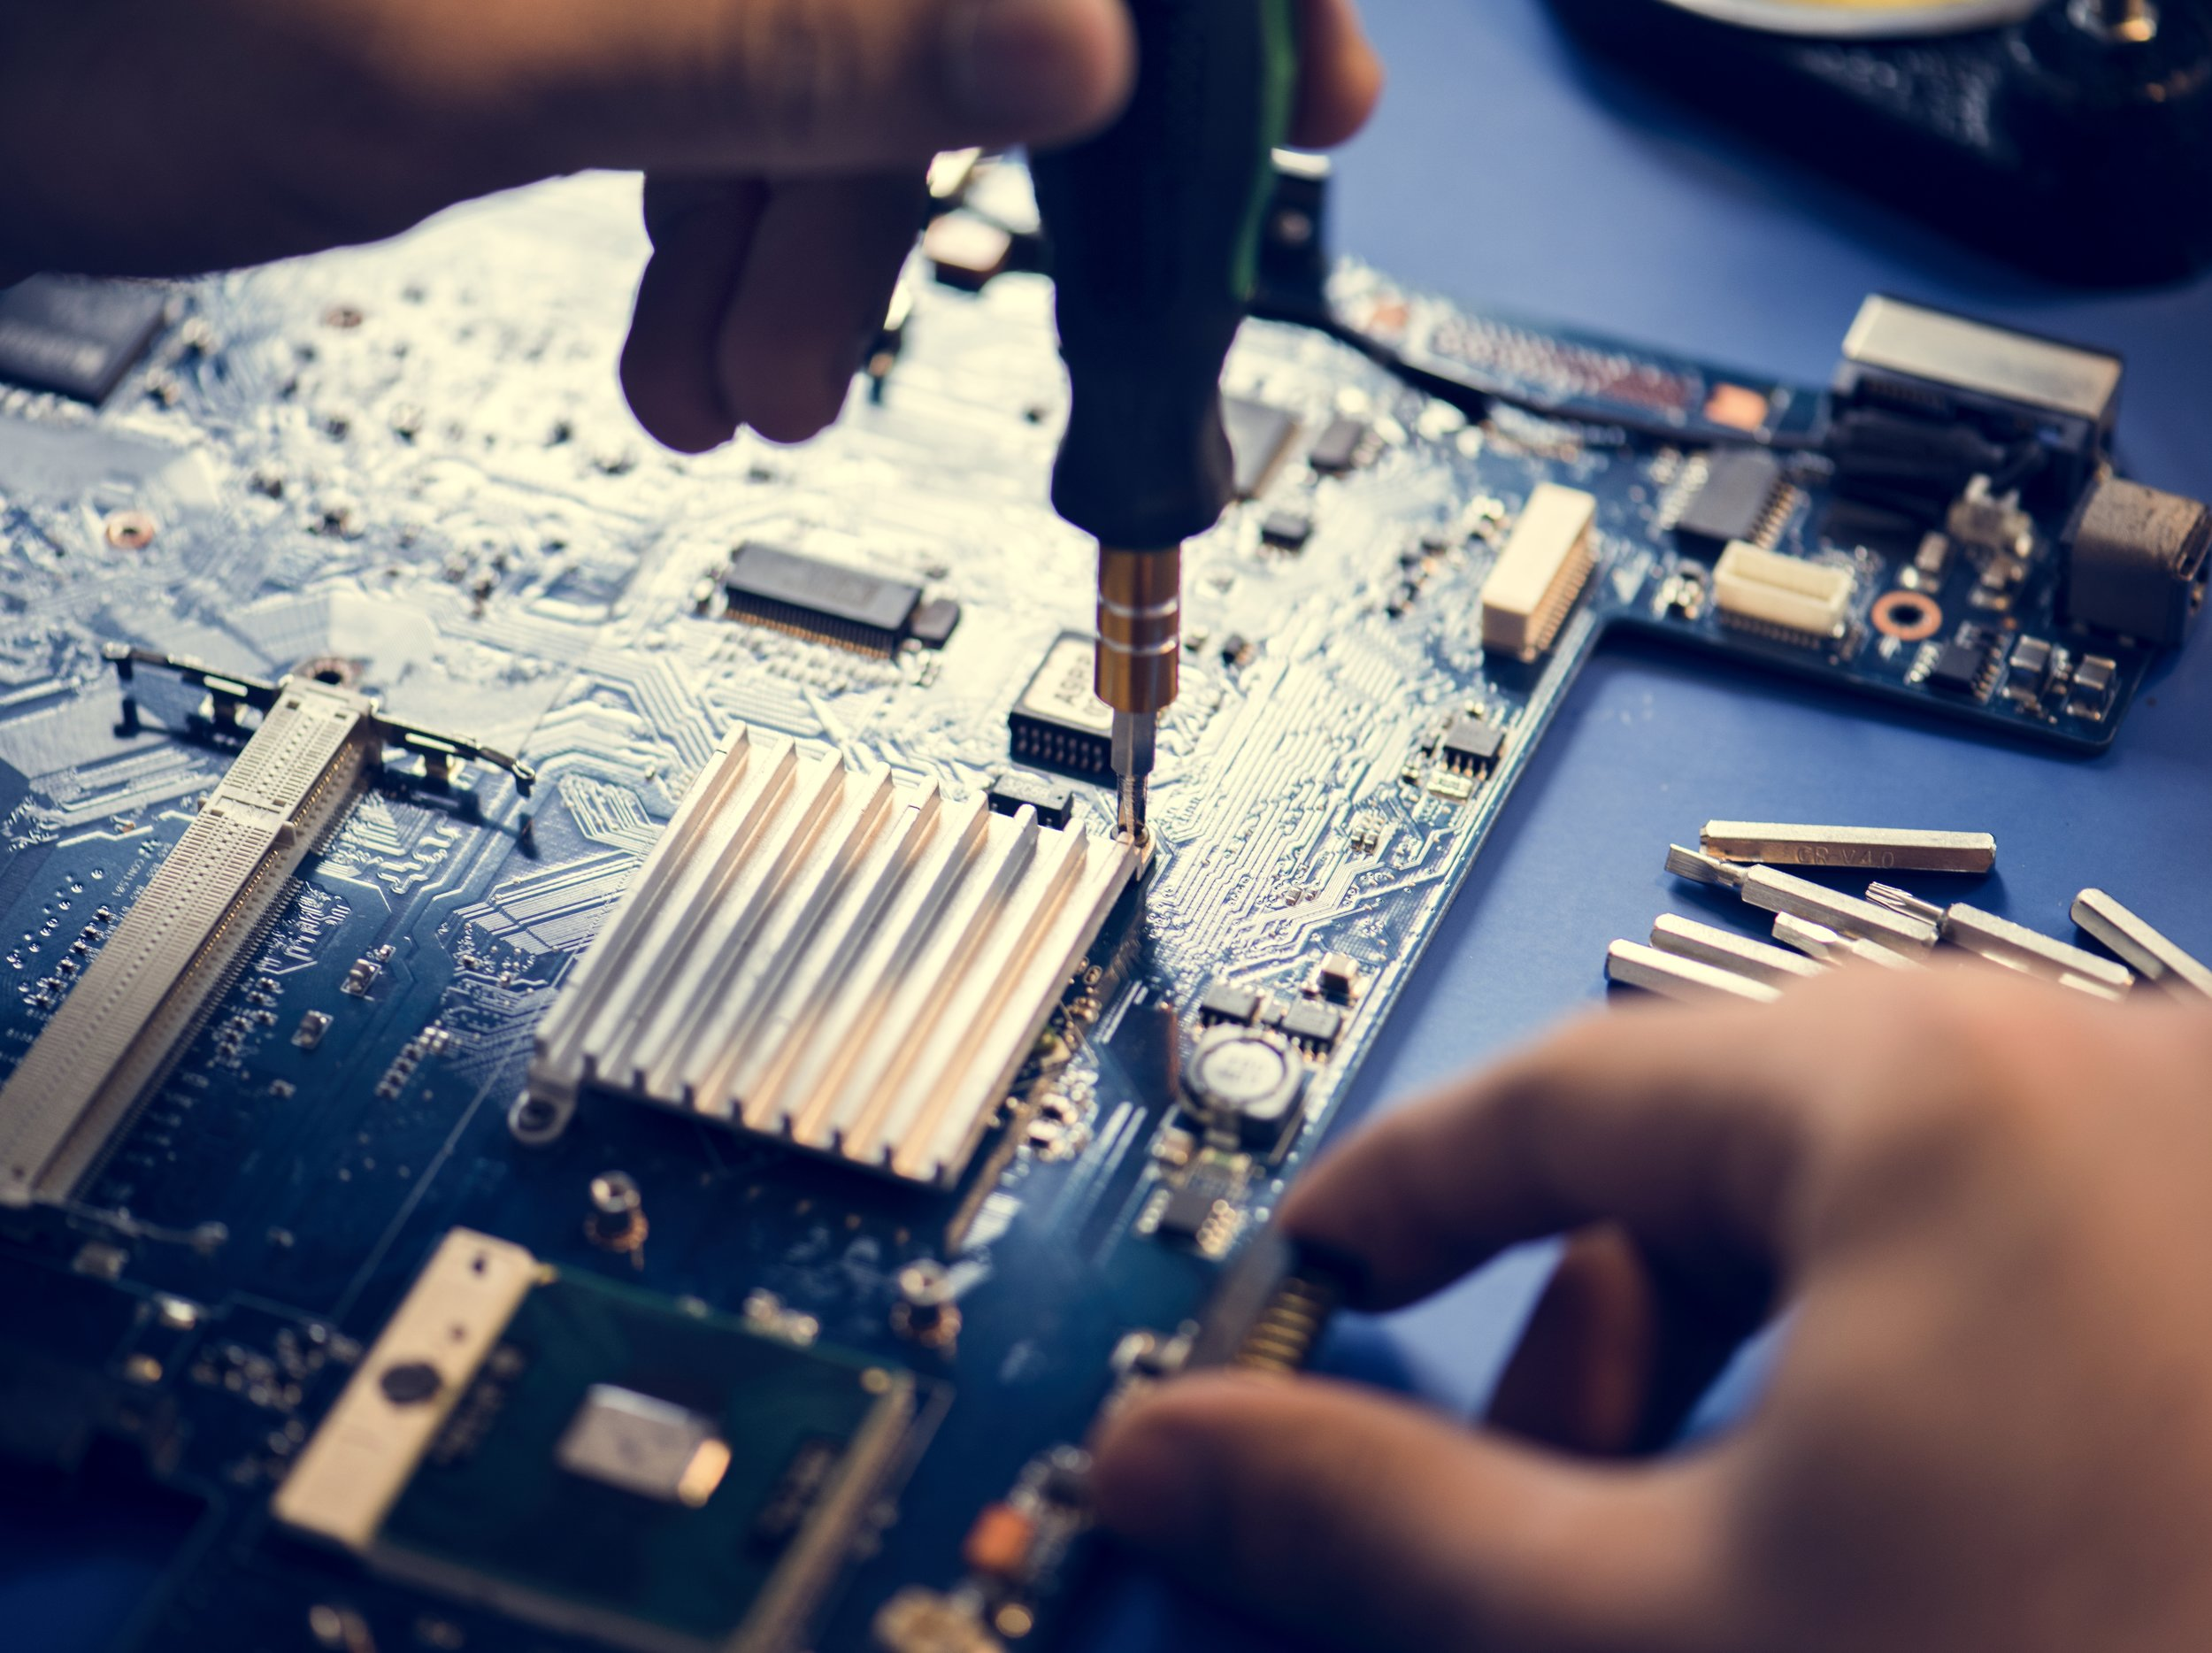 Hardware Repairs - Whether you need a repair, replacement, upgrade, or addition to your laptop or desktop, I have direct access to sourcing original parts and years of hardware experience. Need a new/updated hard drive, display, disc drive, RAM, power supply, or any other component? I can do it!